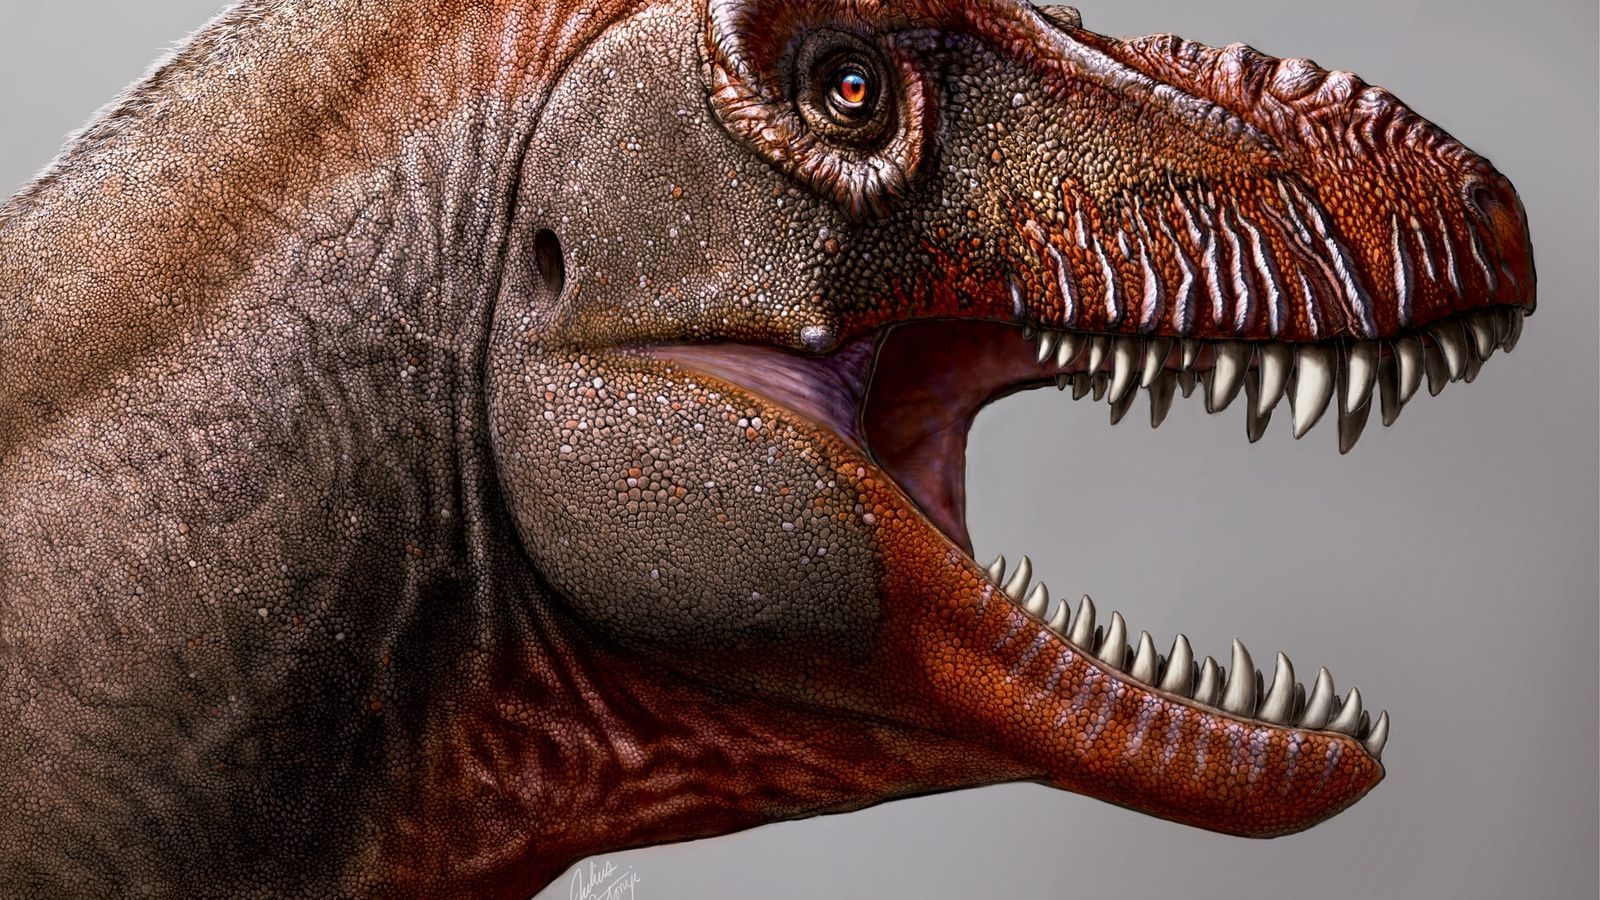 To the untrained eye, many tyrannosaurs look like twins. But Thanatotheristes has several distinctive features that ...